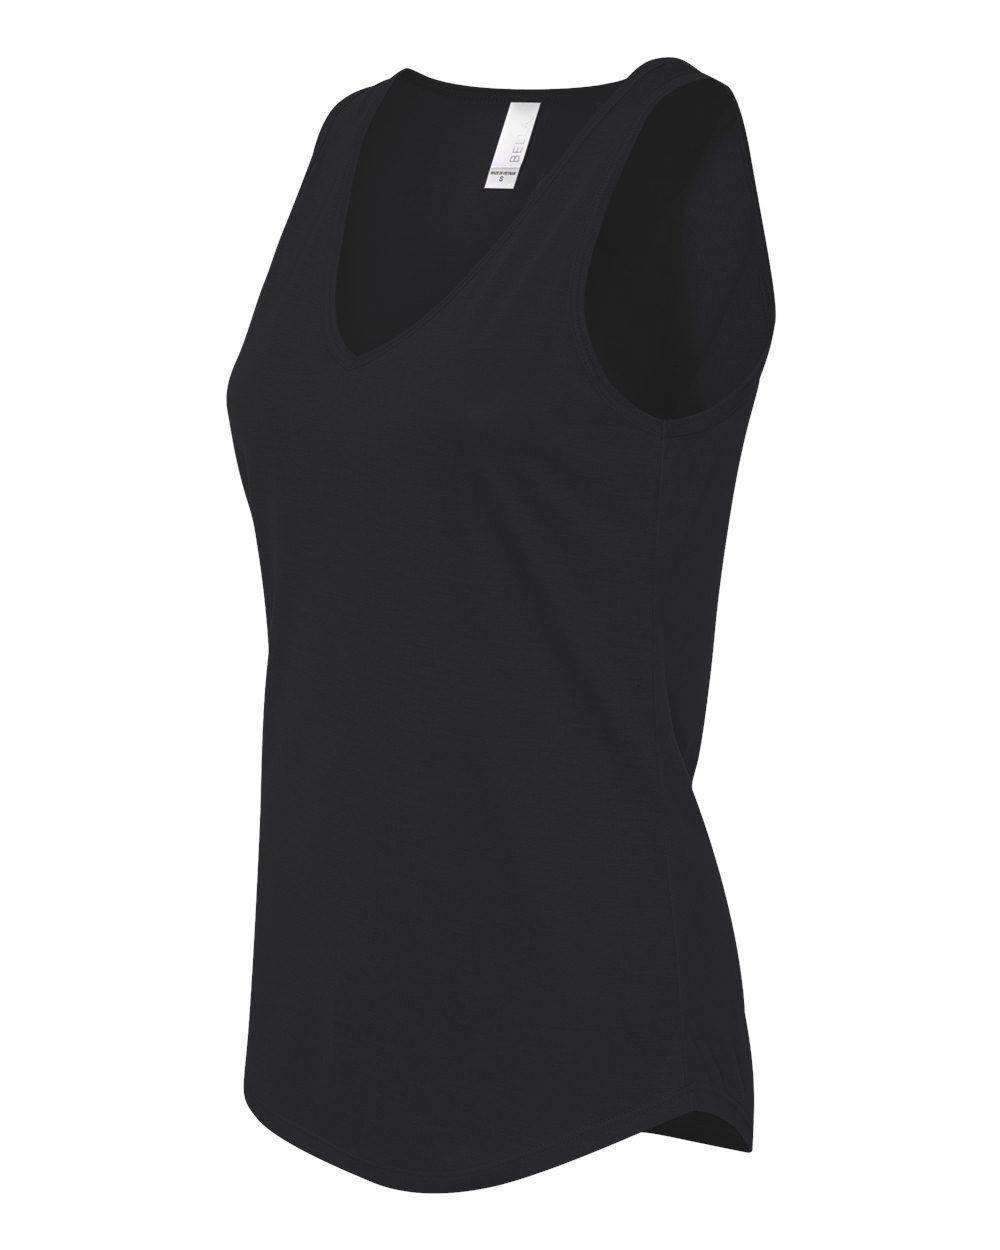 9f836d52 Bella + Canvas 8805 - Women's Flowy V-neck Tank | S&S Activewear ...